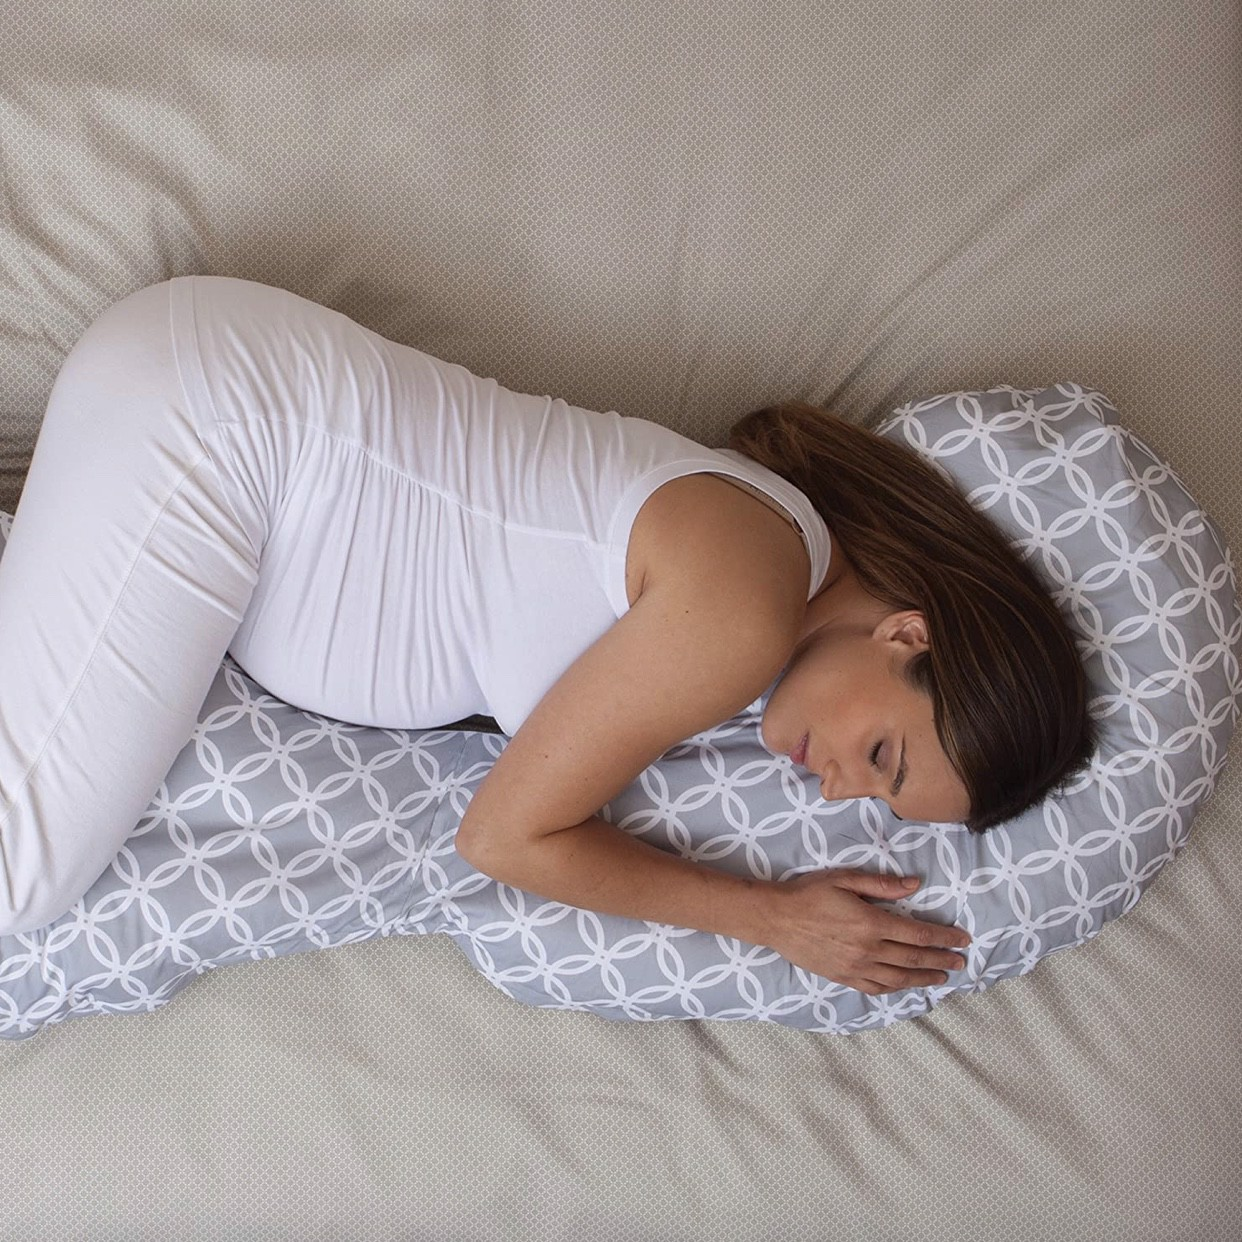 Gối nằm cho mẹ Boppy Slipcovered Total Body Pregnancy Pillow